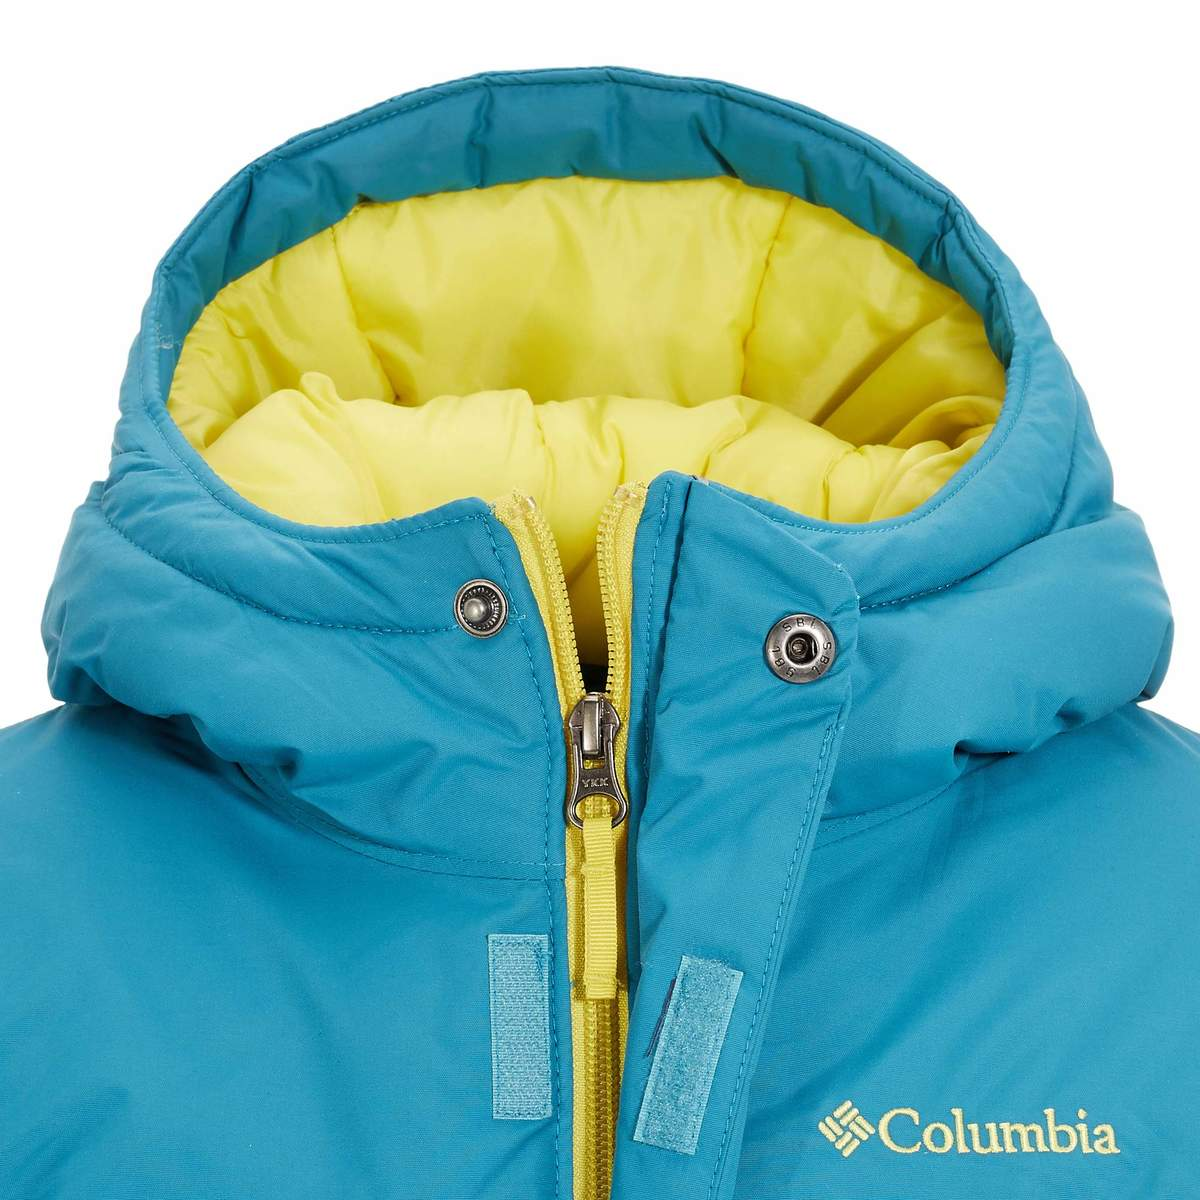 Bild 4 von Columbia Alpine Free Fall Jacket Kinder - Winterjacke